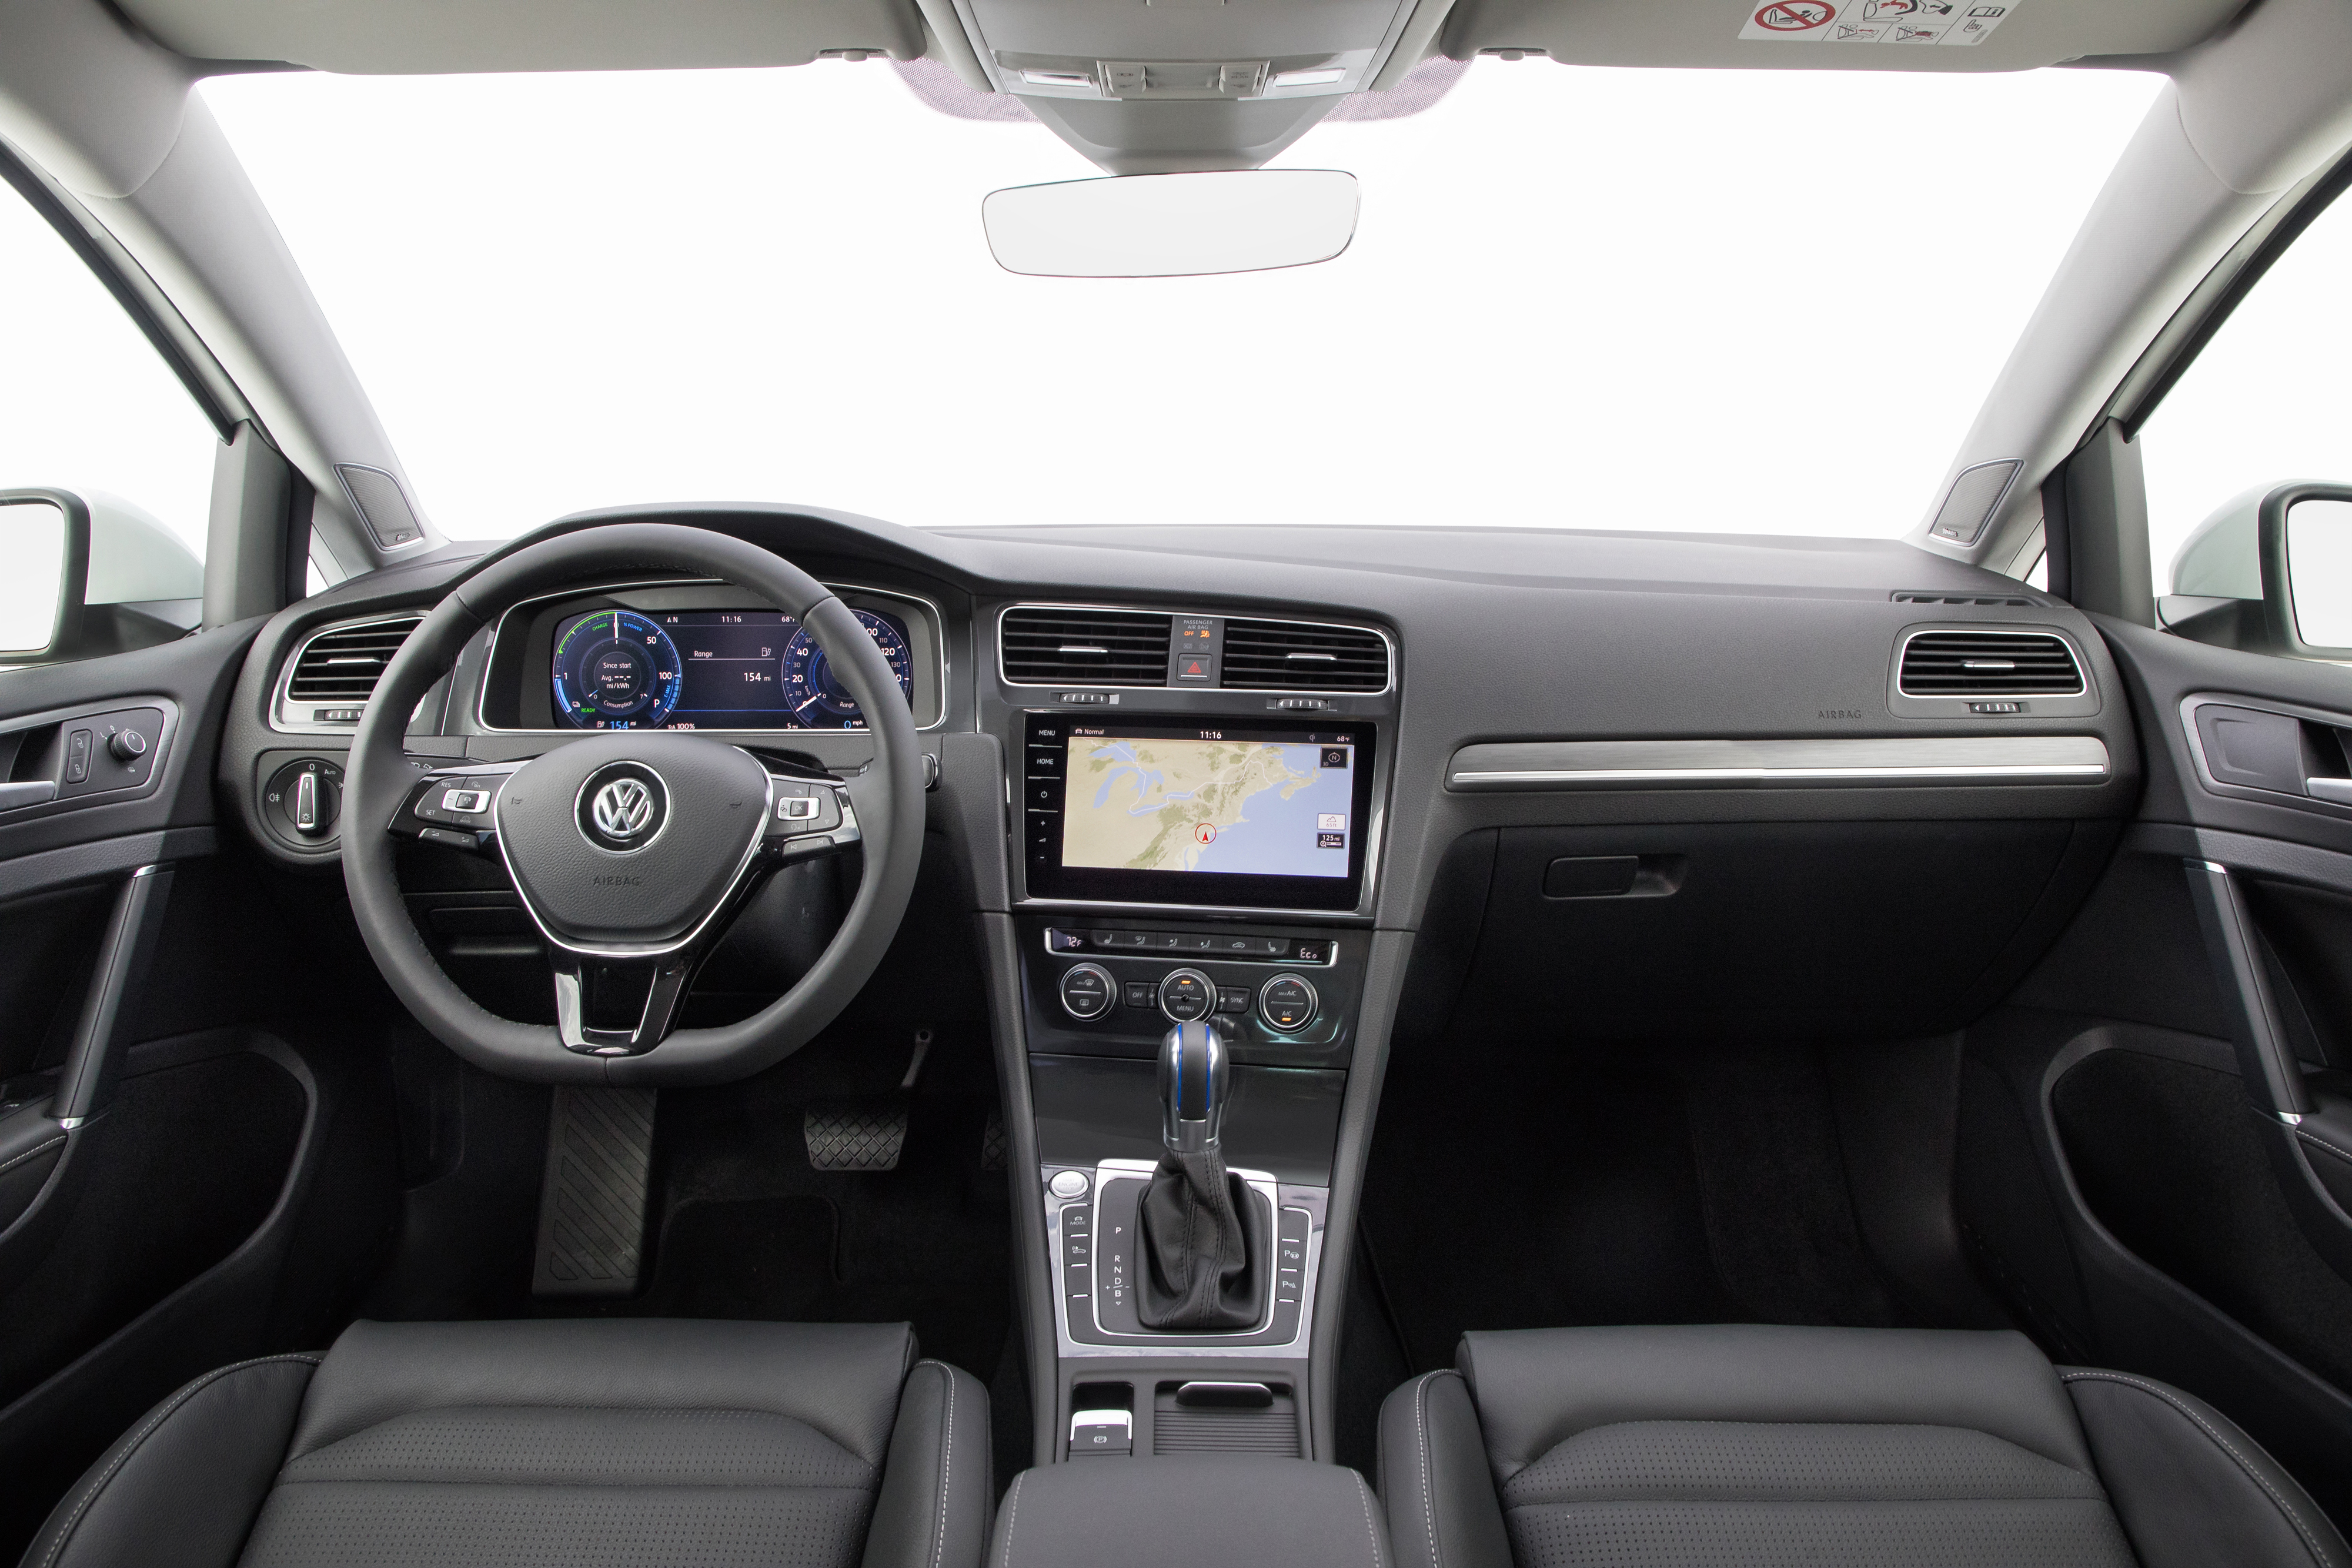 Volkswagen e-Golf accessories specifications